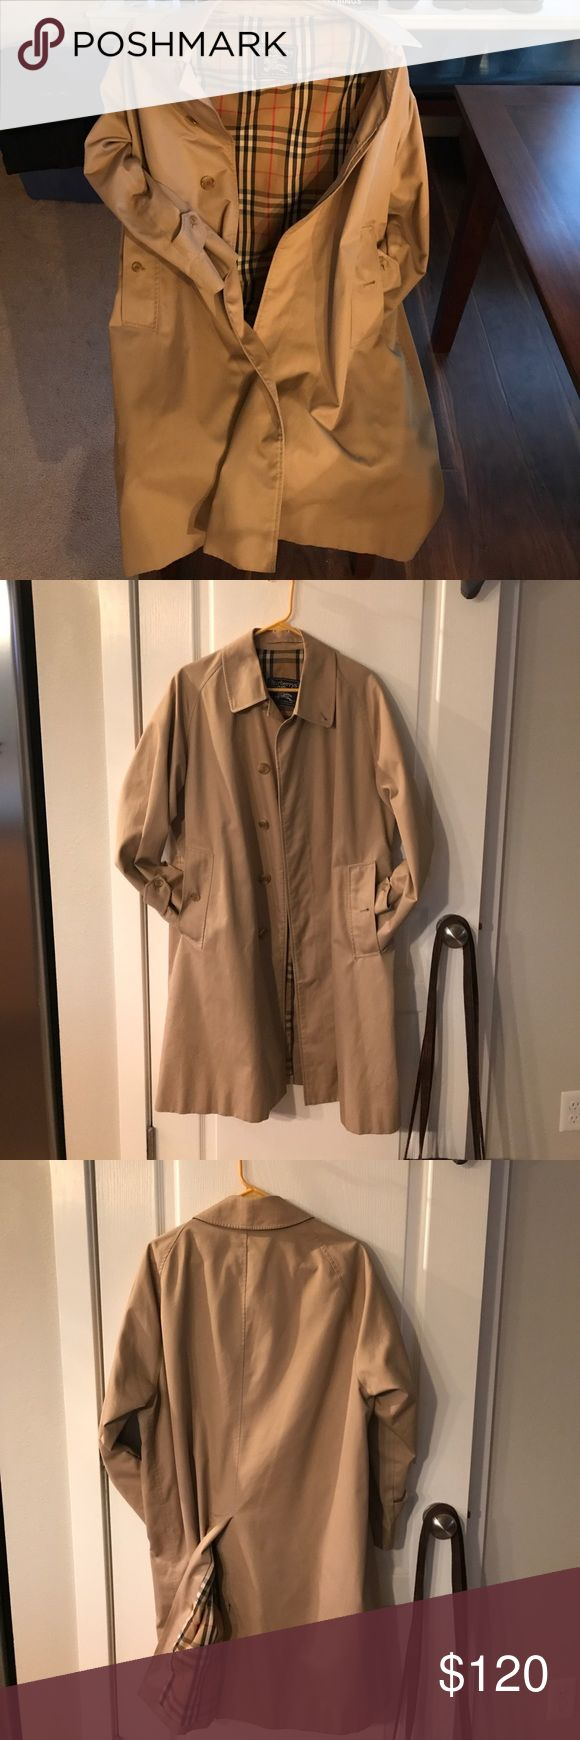 Burberry Rain Coat/Duster Women's or Men's New I bought this in 1990, when I was 9 months pregnant so I bought a large, I think. No size indicator. I wore it for one month. No stains, scratches. All buttons and fabric looks brand new. No wear marks at all. Burberry Jackets & Coats Trench Coats